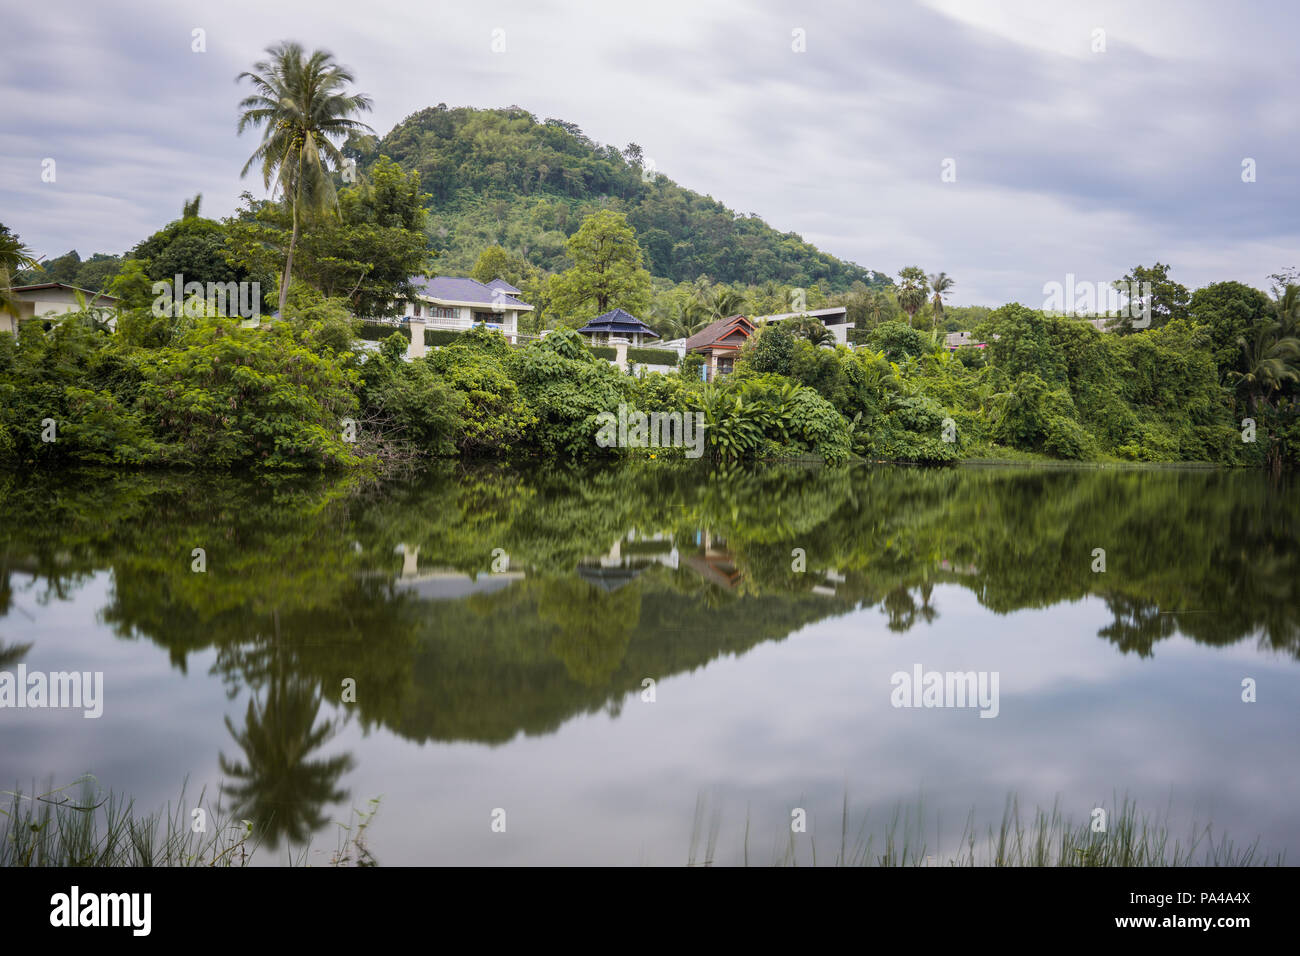 Lake Reflection In The Phuket Thailand Surface Of Lakes Like A Mirror Reflect Image Above Double Landscape